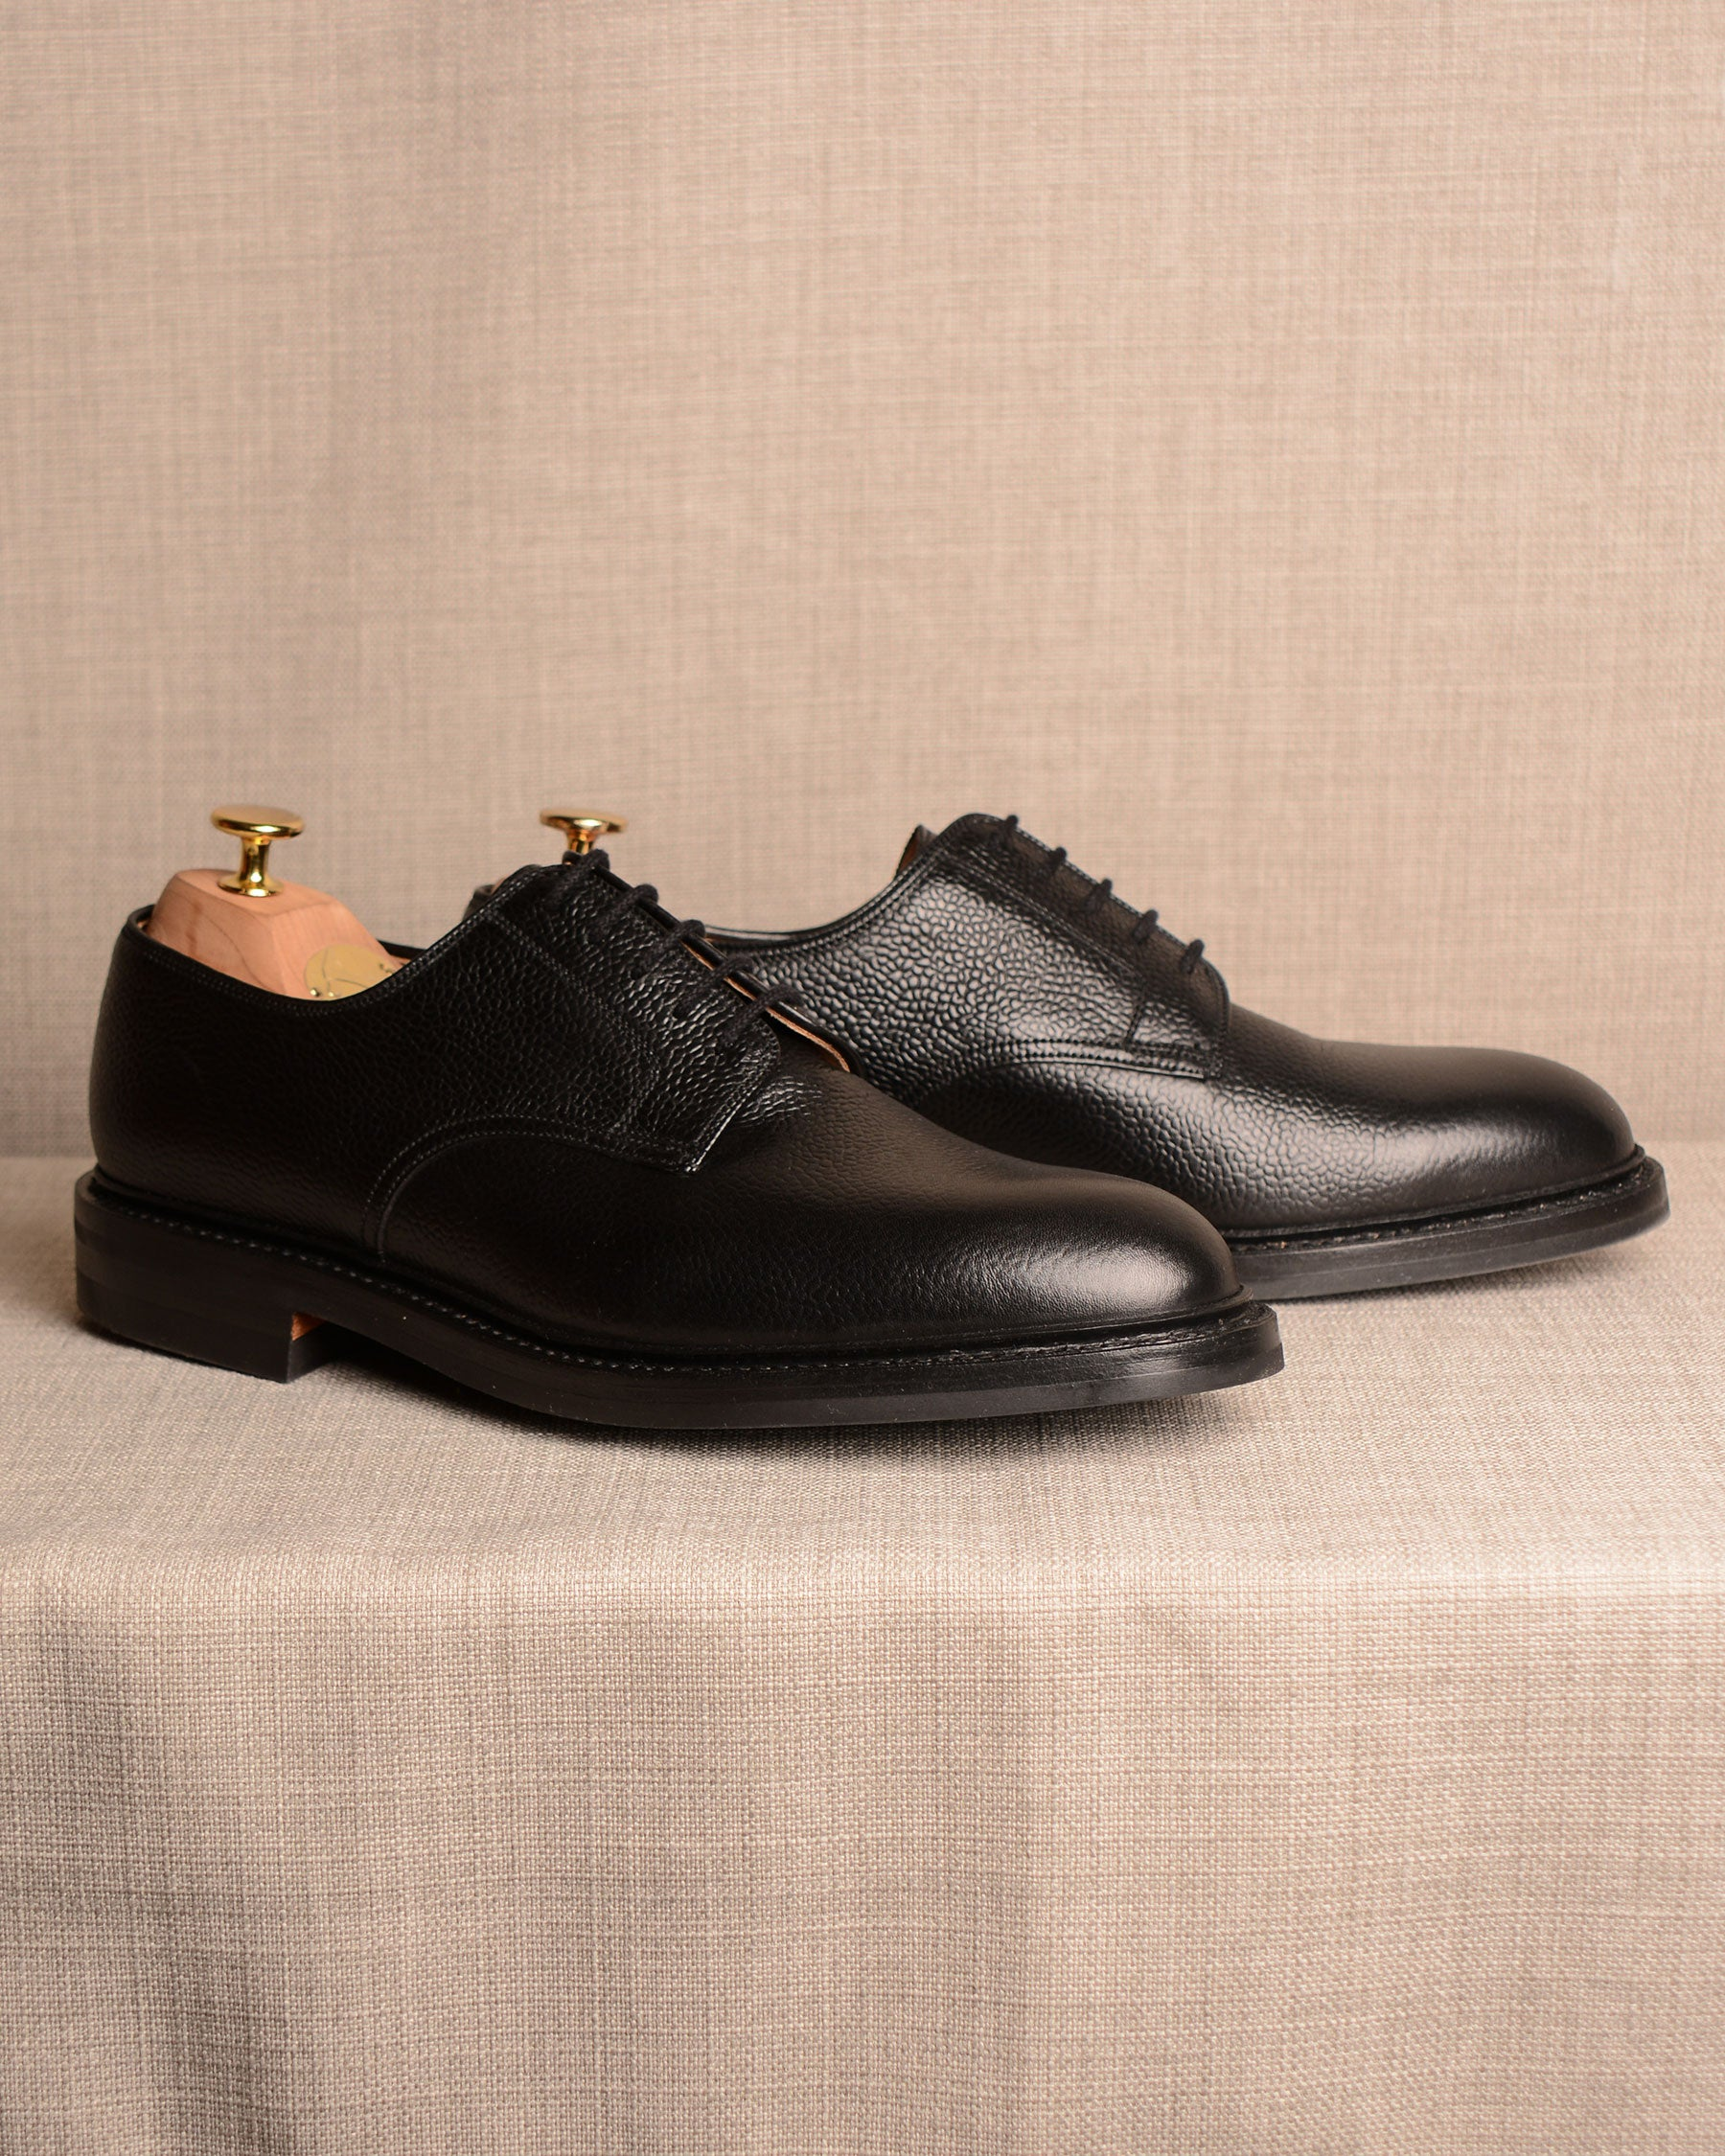 Crockett & Jones Grasmere - Black Grain